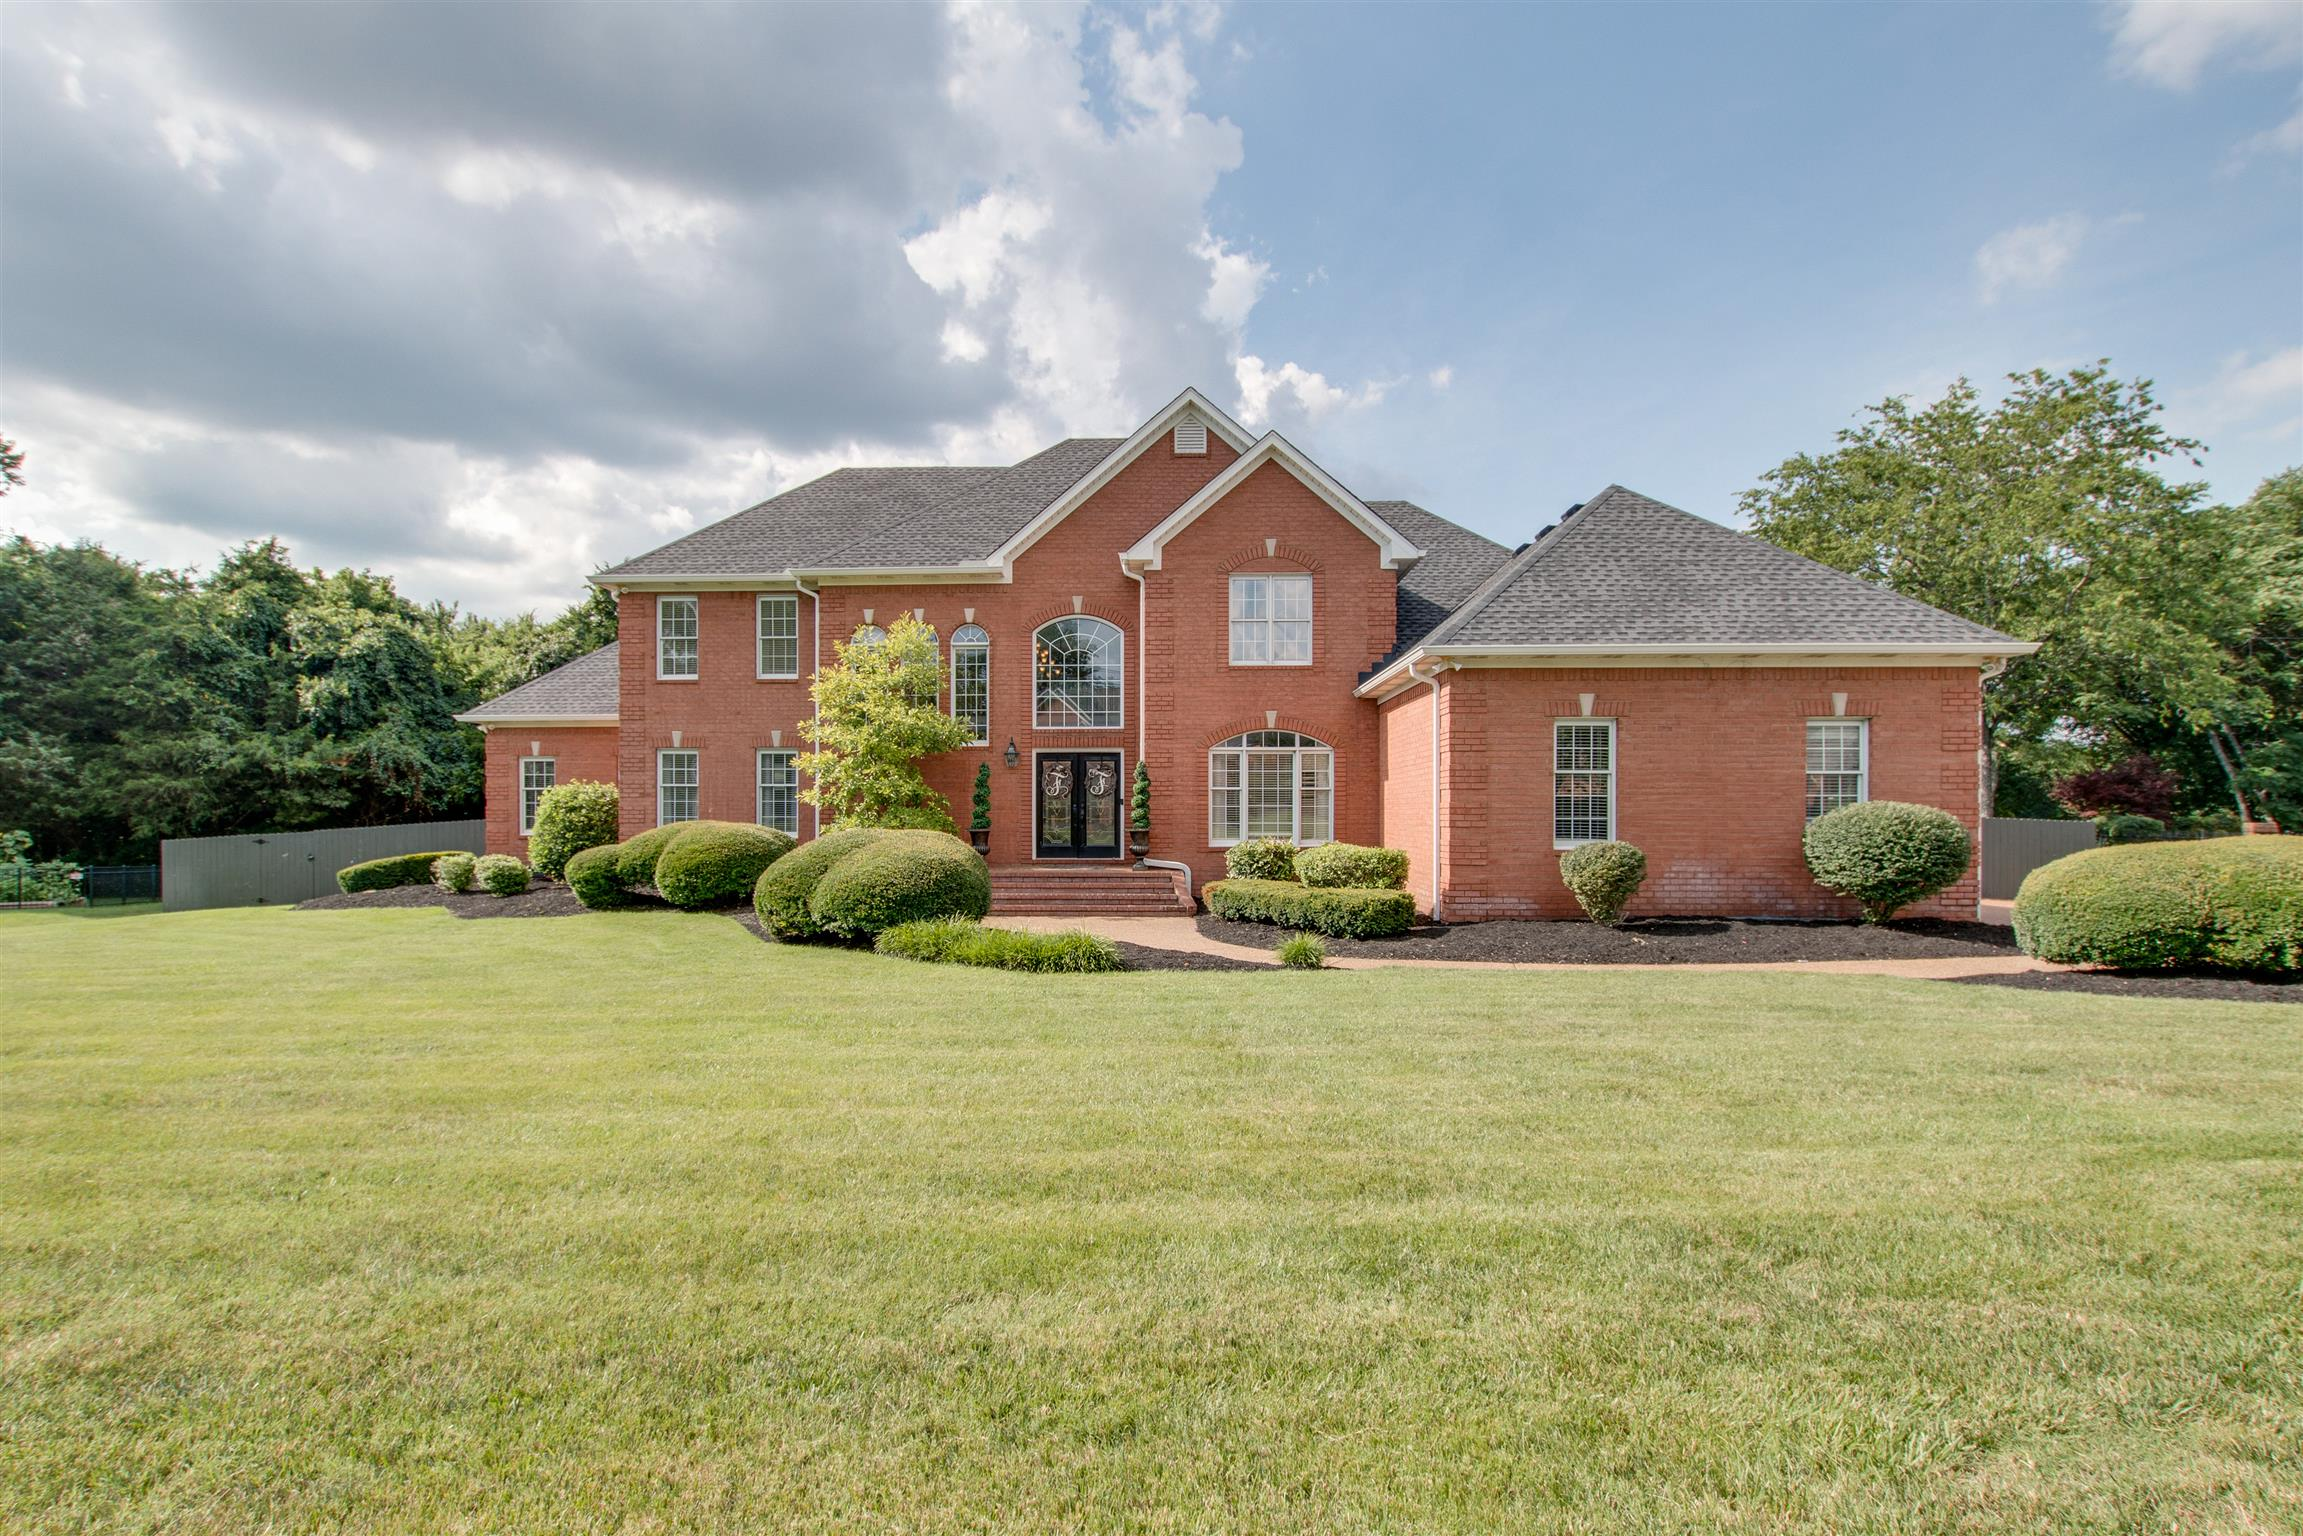 427 Liberty Dr, Smyrna, TN 37167 - Smyrna, TN real estate listing